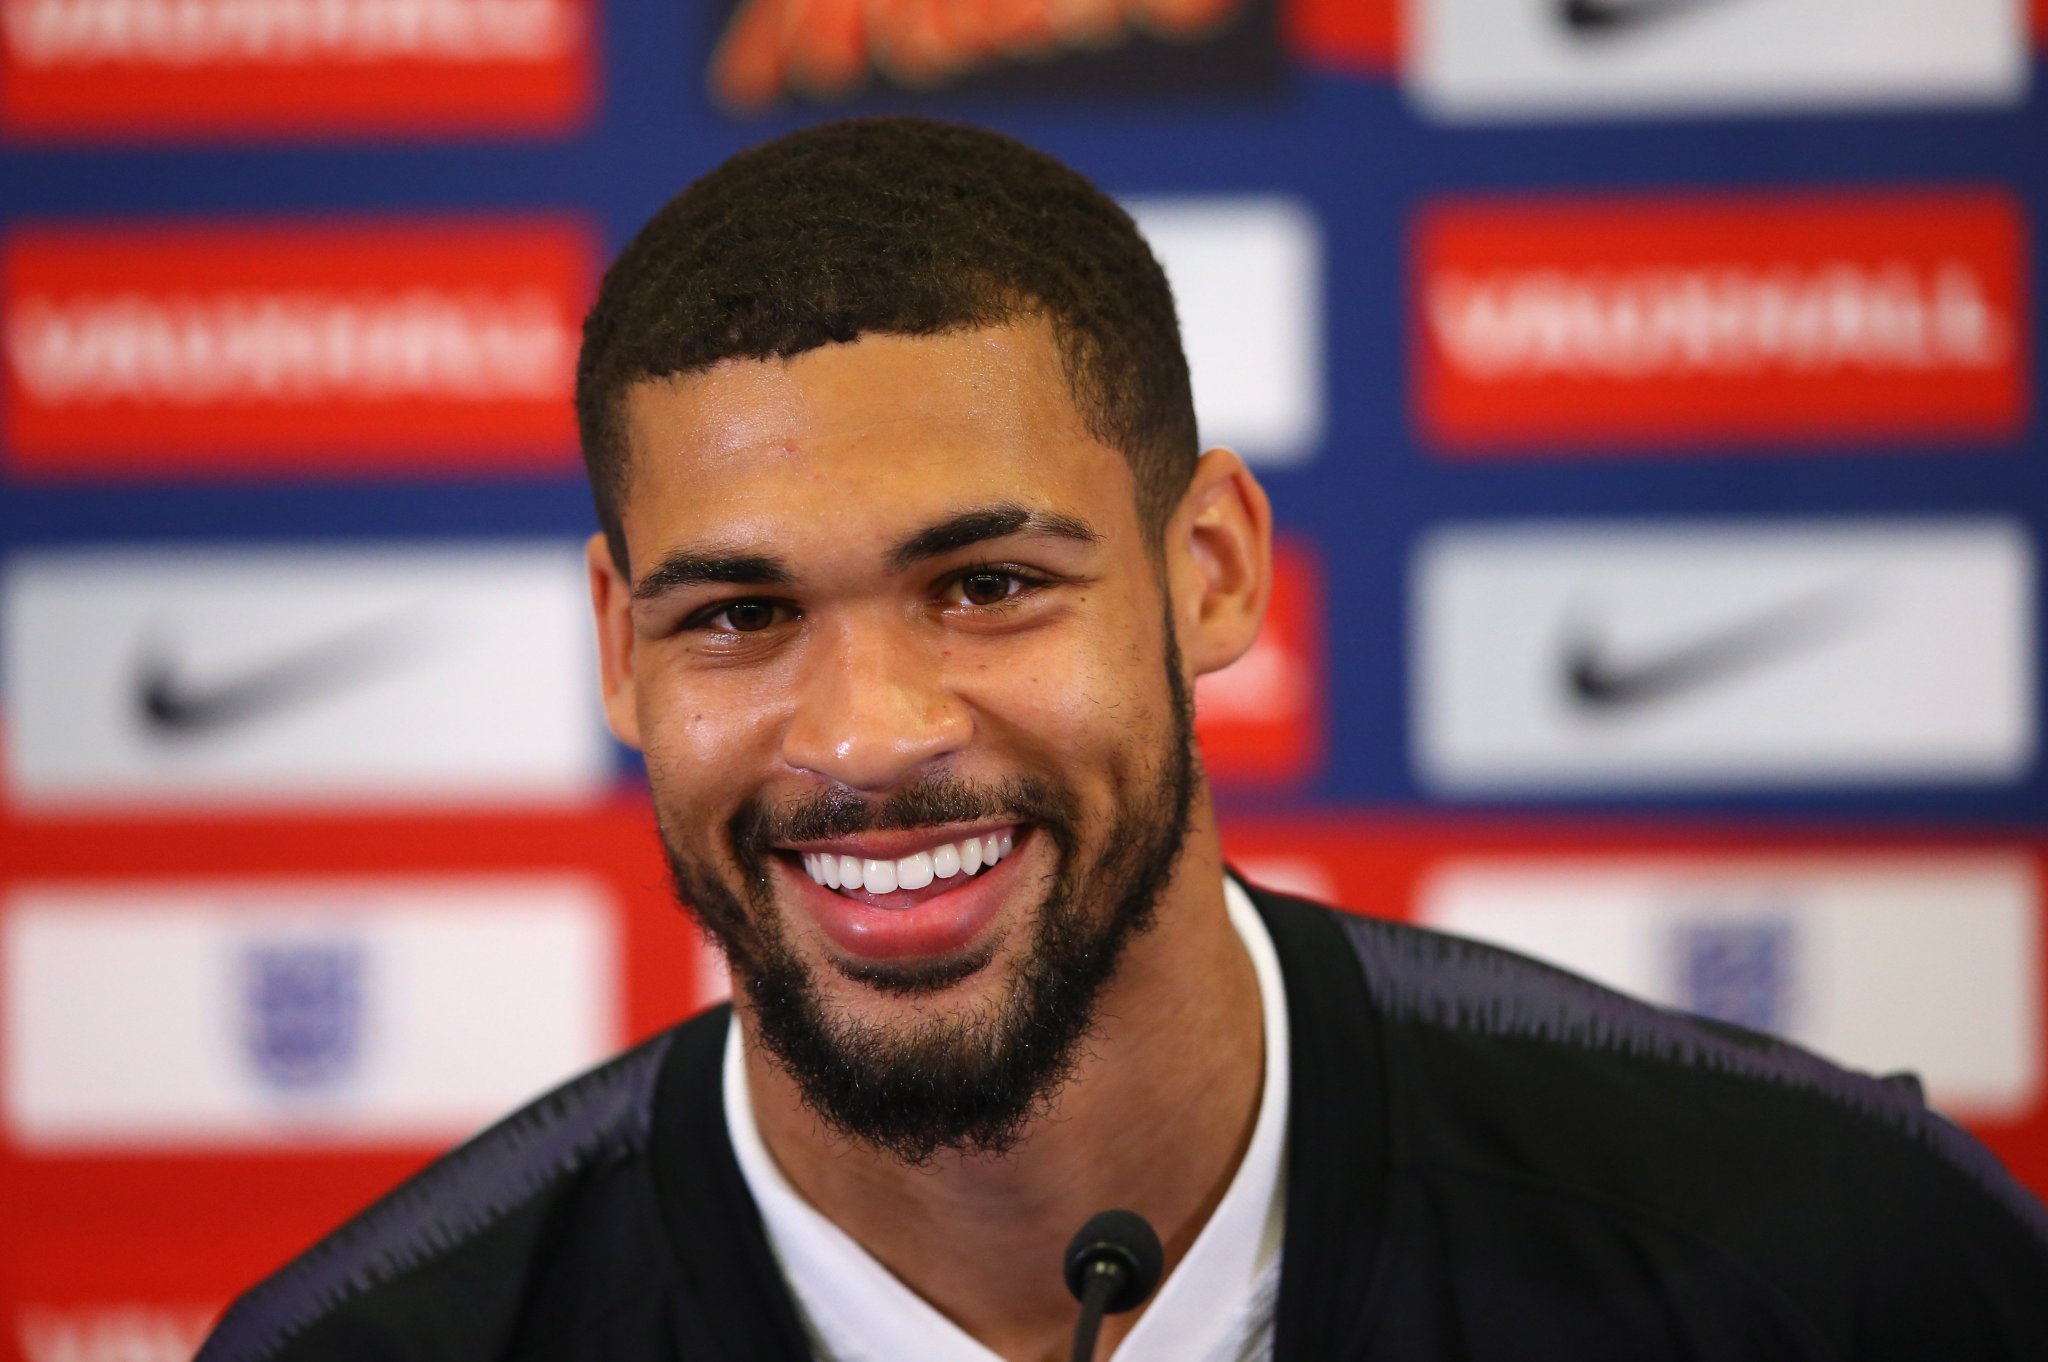 'It's a life-long dream of mine, I'm ecstatic!' - @rubey_lcheek   More �� https://t.co/sVGizHQtoE #WorldCup https://t.co/j9DW3l6HQz